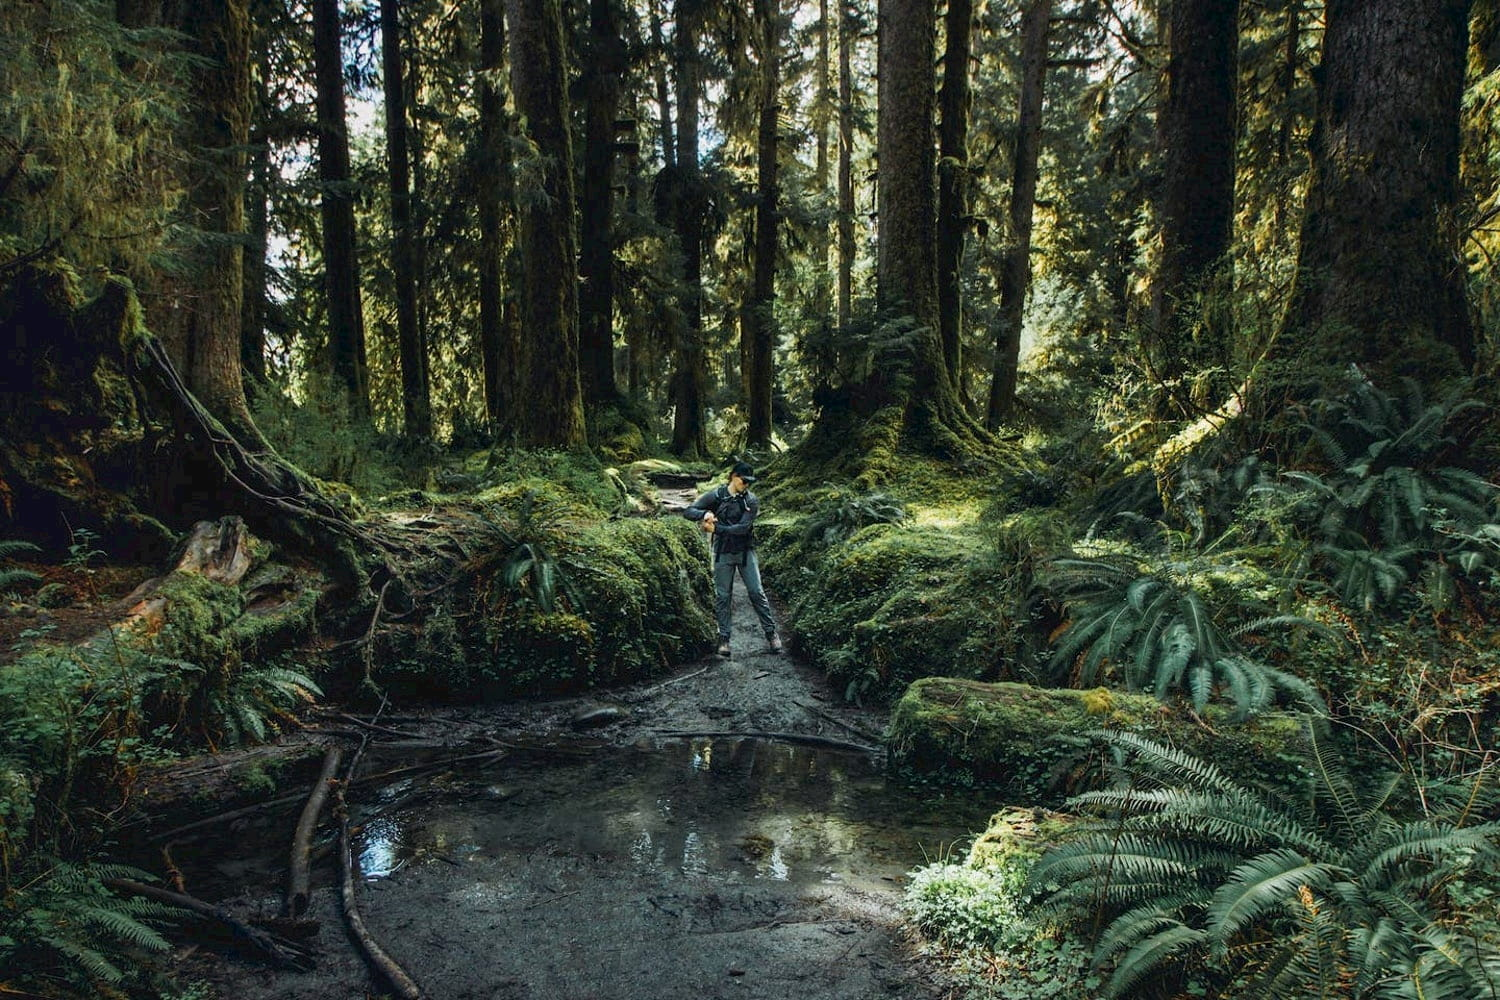 Person hiking in the Hoh rainforest.